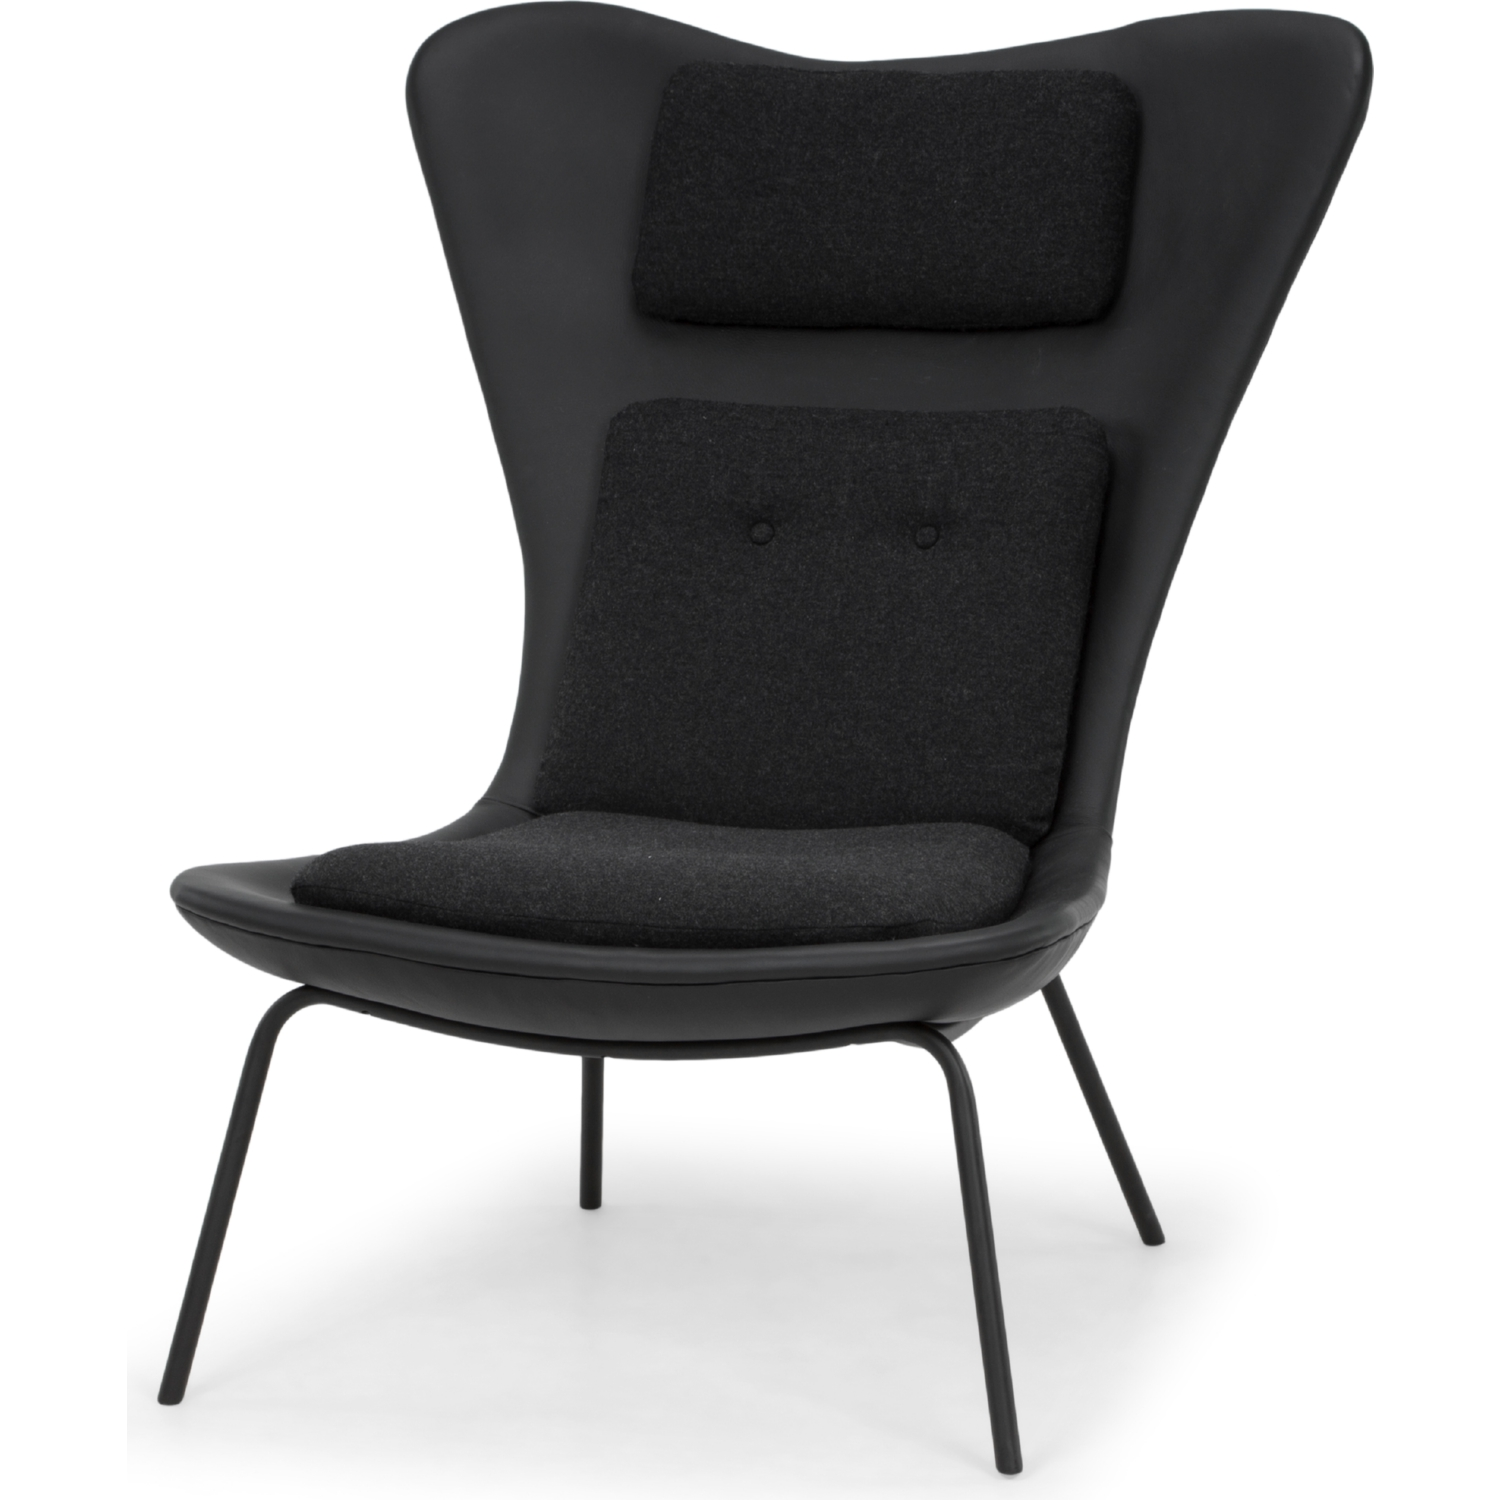 Fabulous Barlow Accent Chair In Fossil Black Leather Grey Fabric By Nuevo Modern Furniture Theyellowbook Wood Chair Design Ideas Theyellowbookinfo